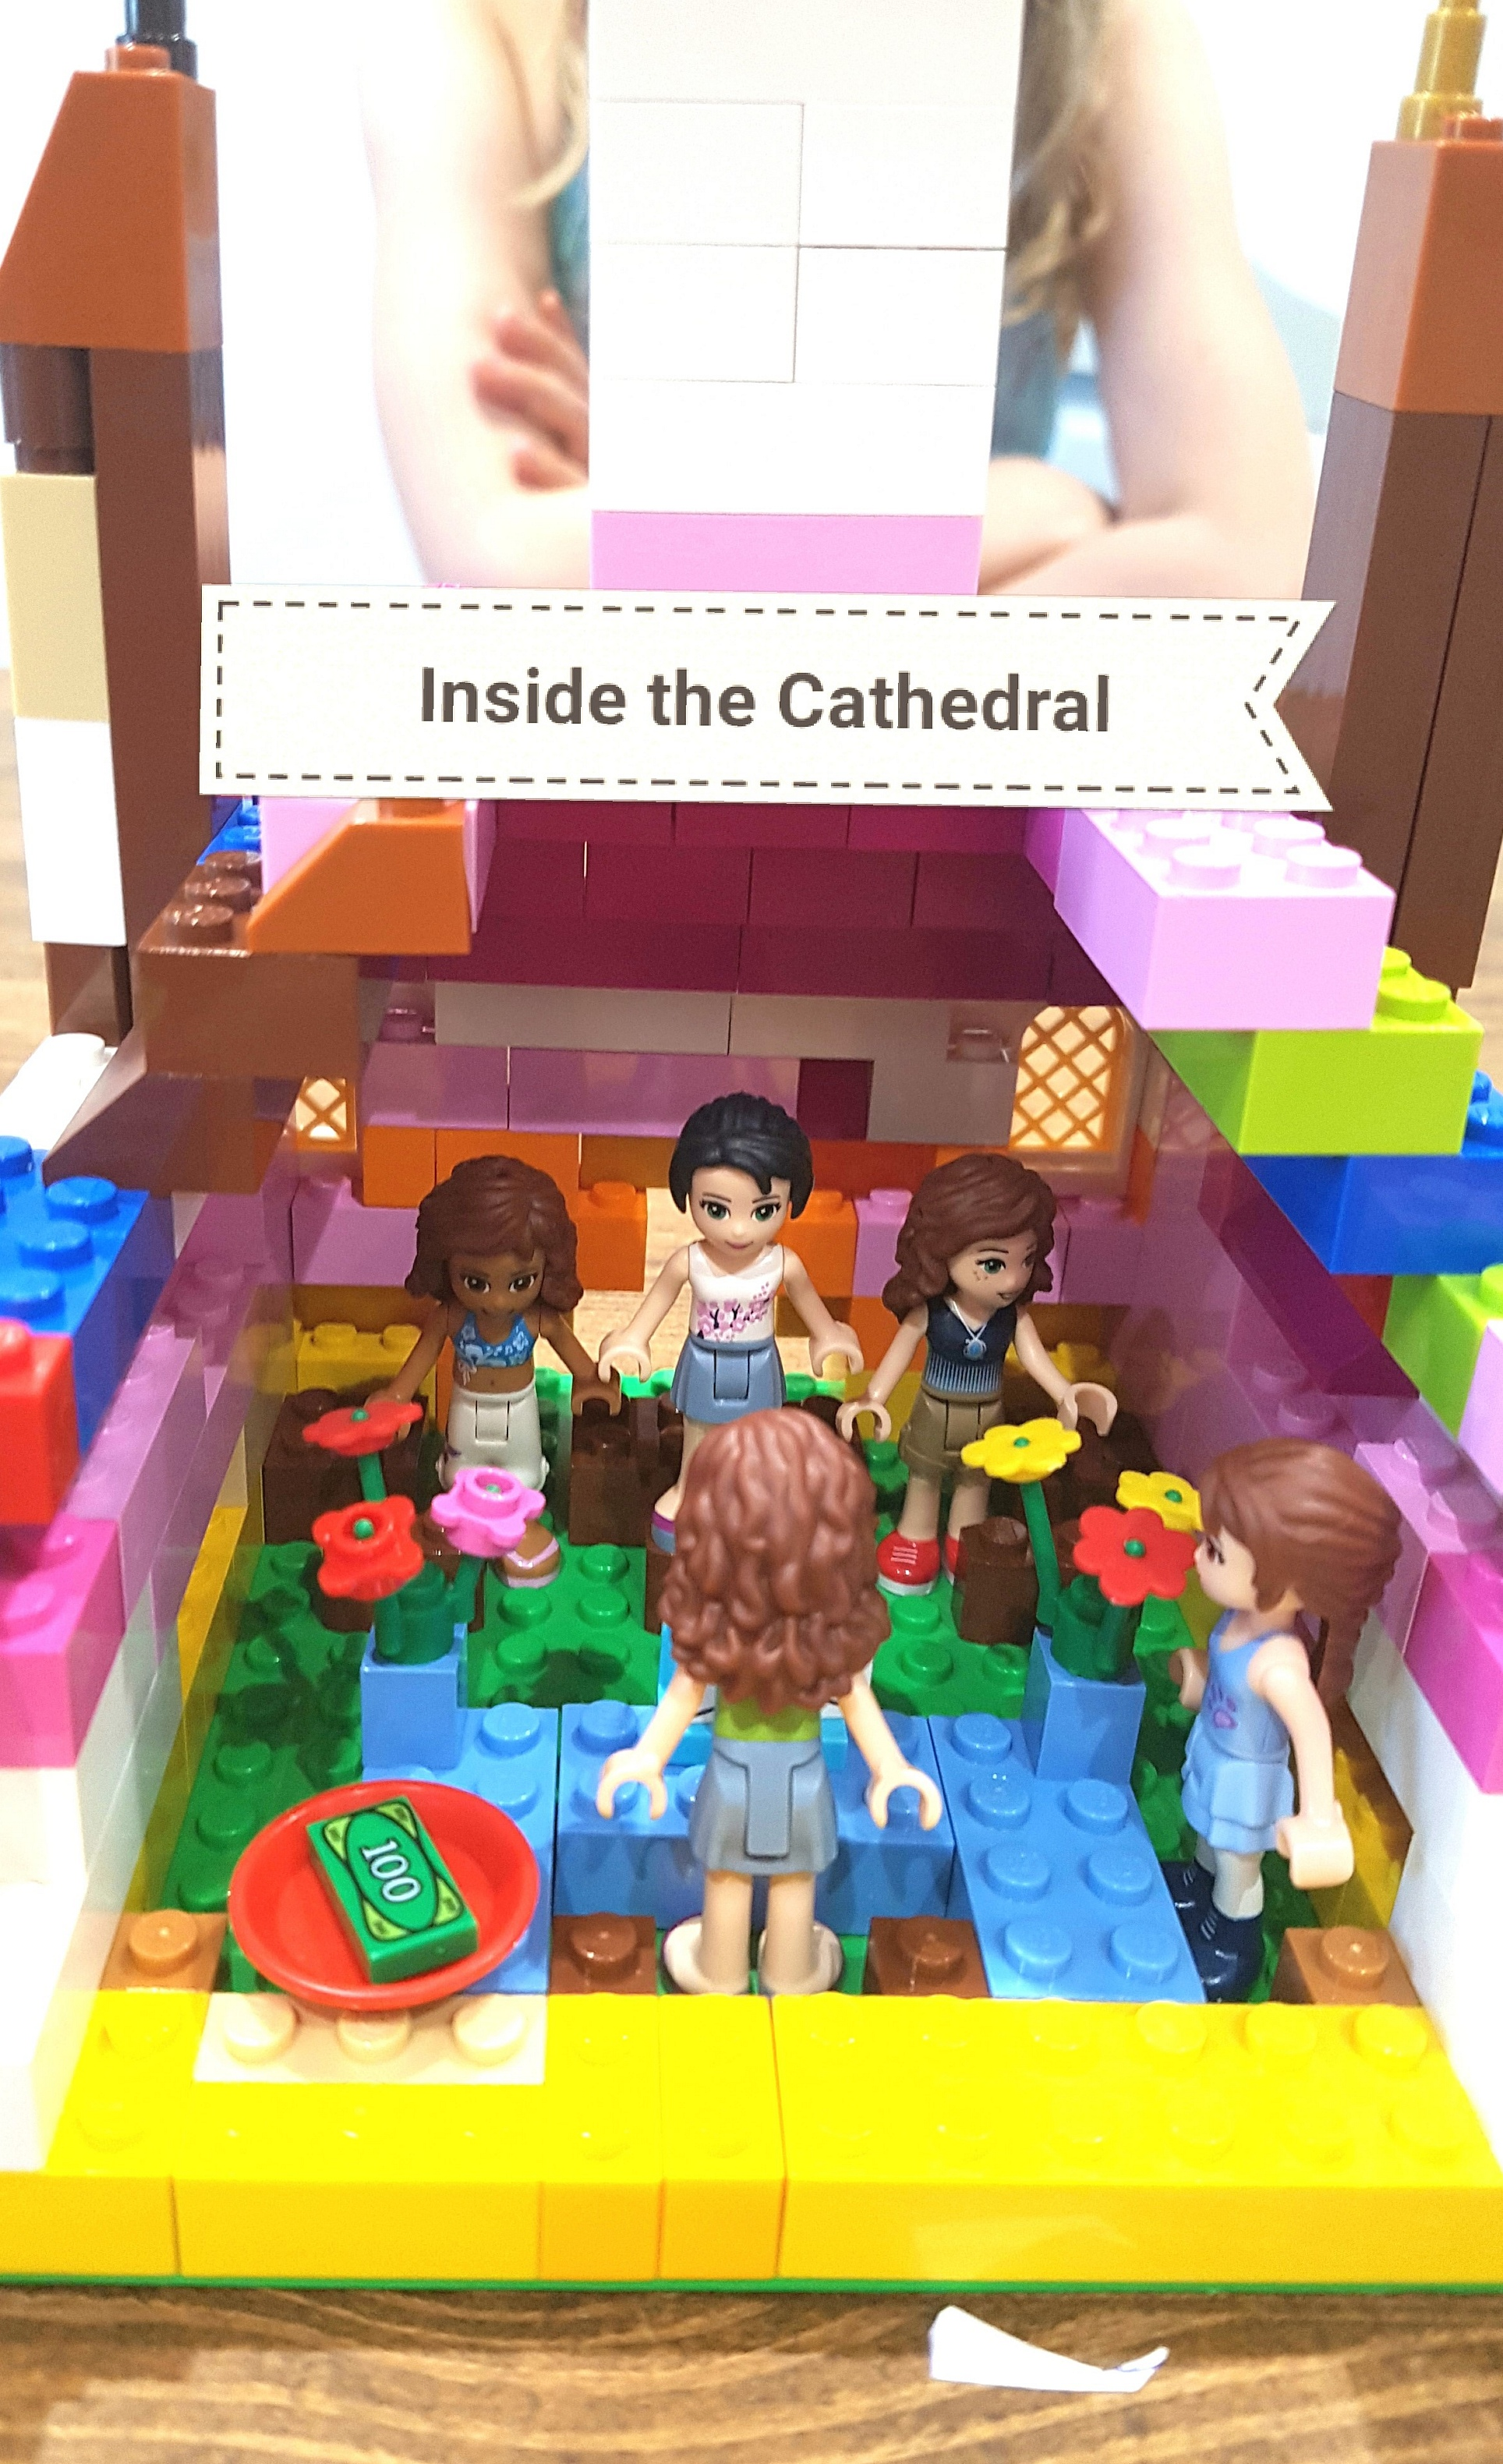 Inside the Lego cathedral